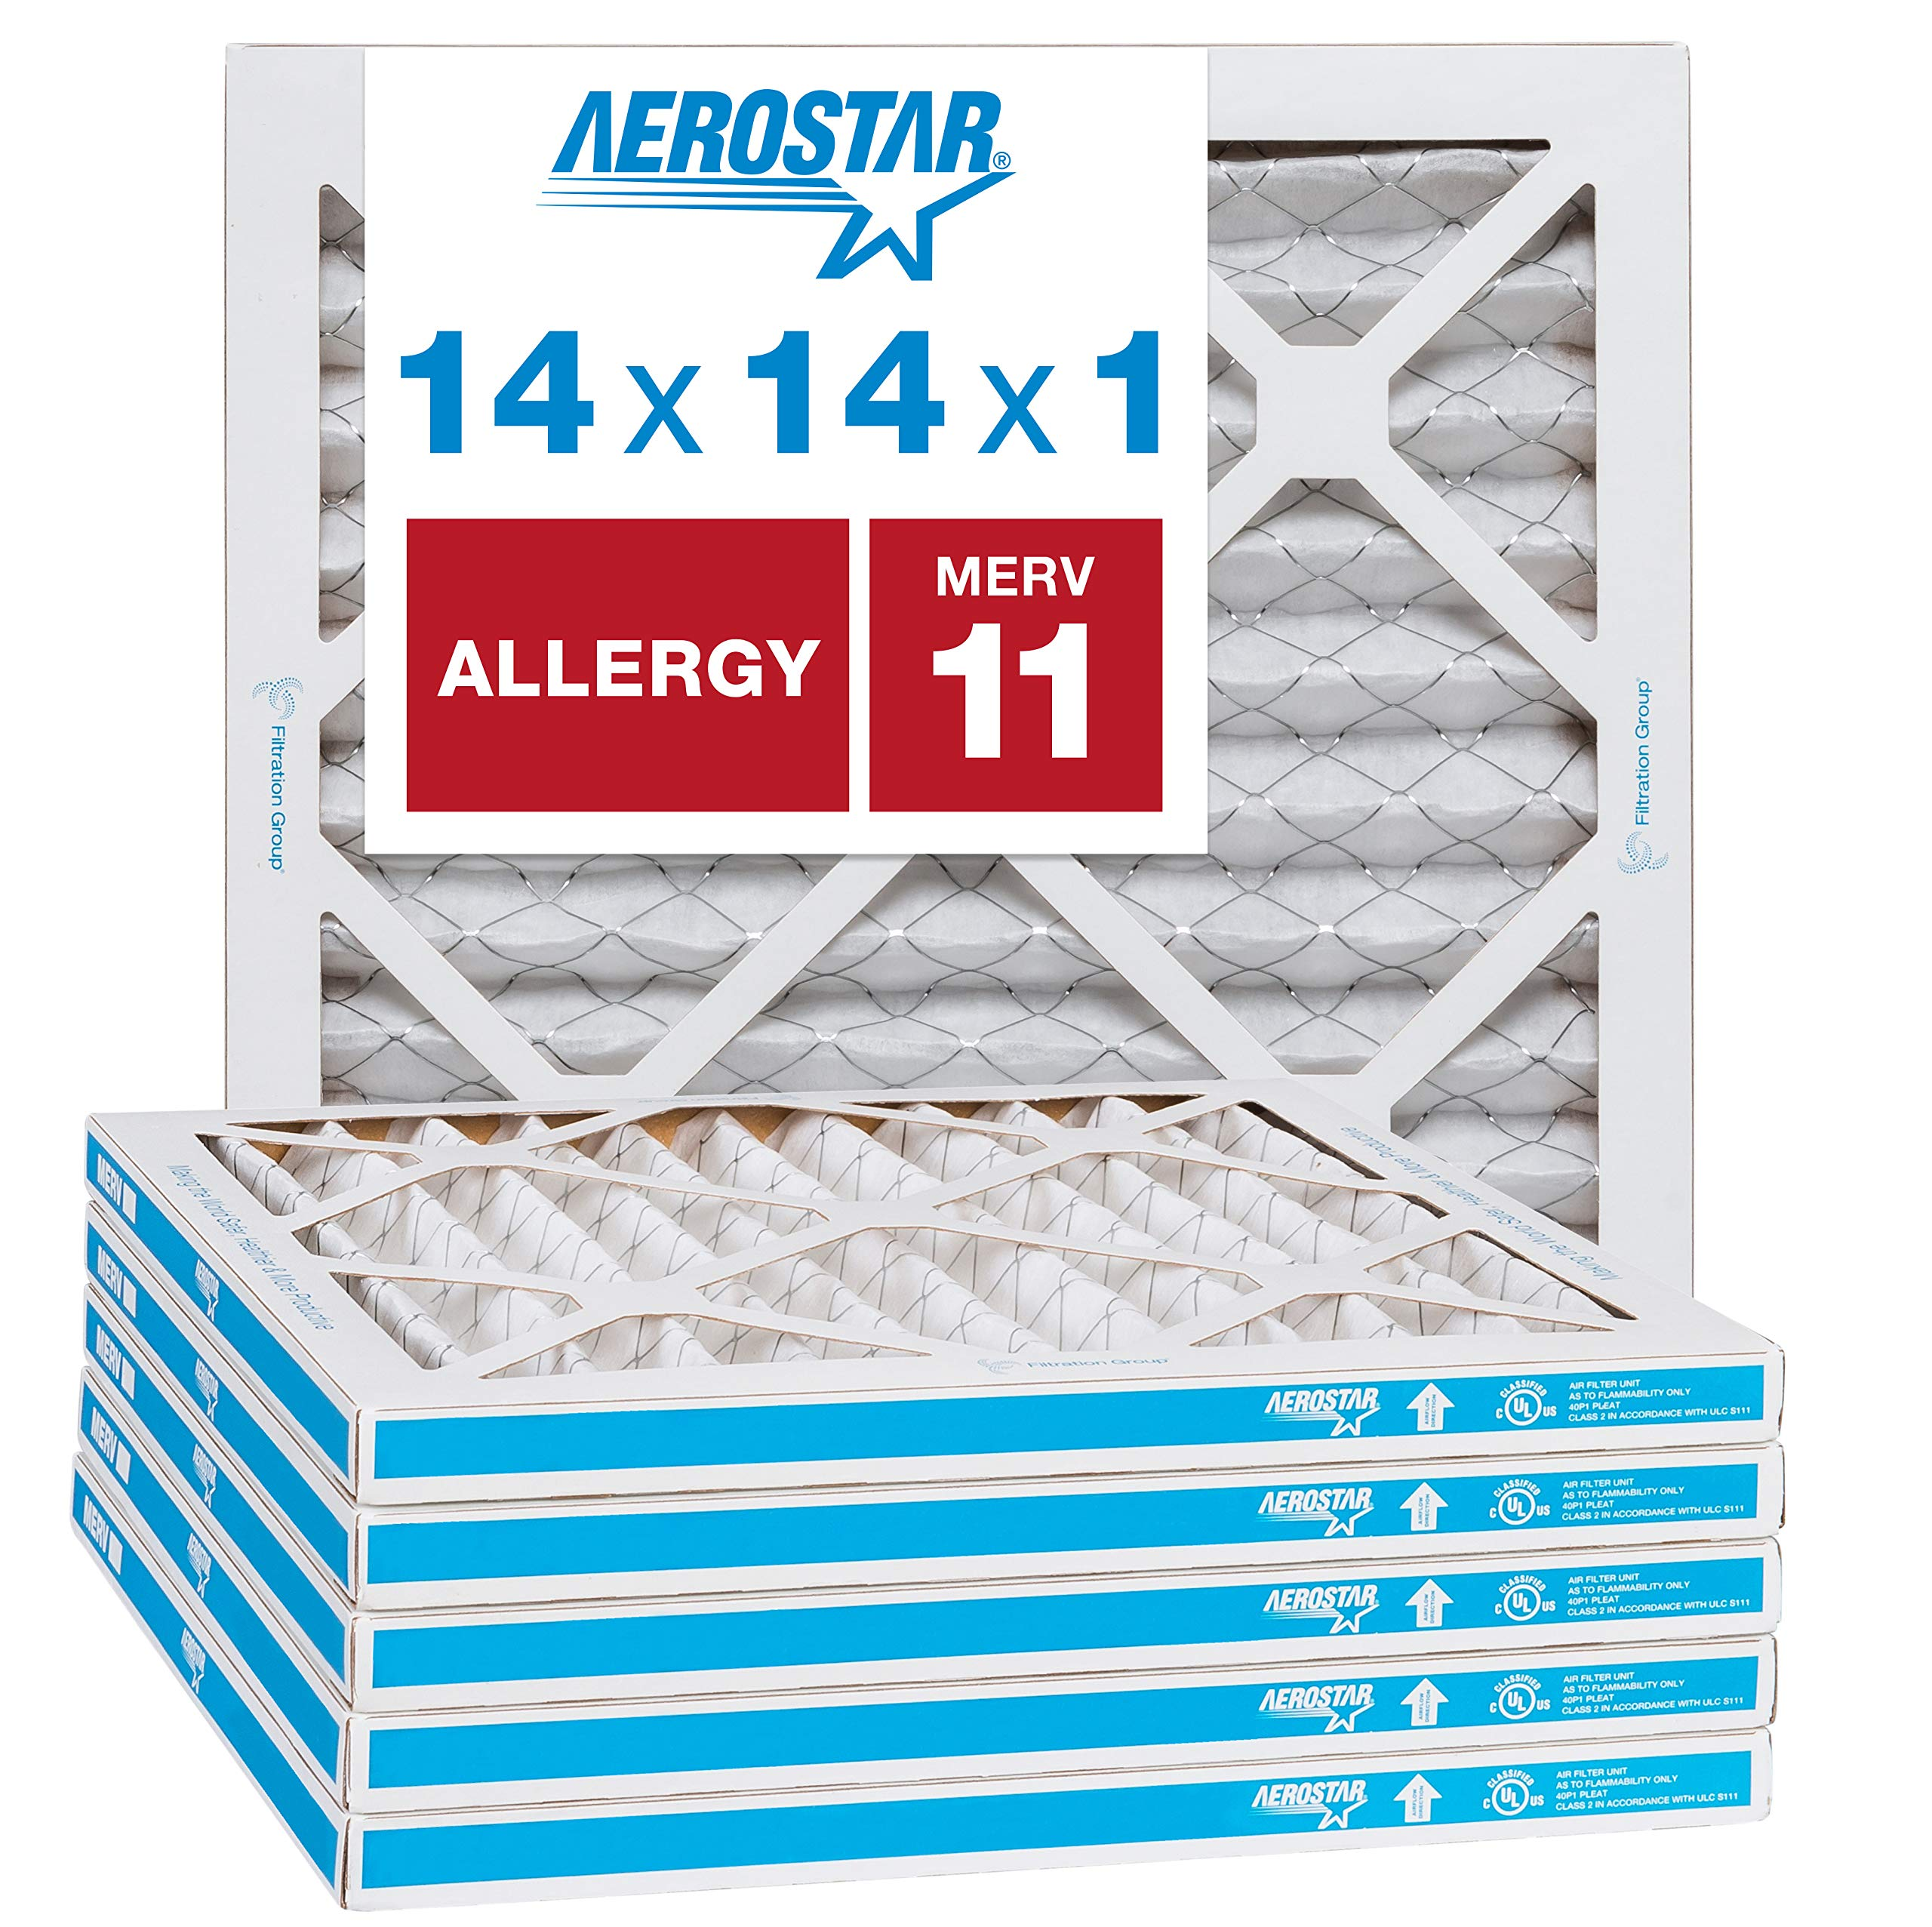 """Aerostar Allergen & Pet Dander 14x14x1 MERV 11 Pleated Air Filter, Made in the USA, (Actual Size: 13 3/4""""x13 3/4""""x3/4""""), 6-Pack"""